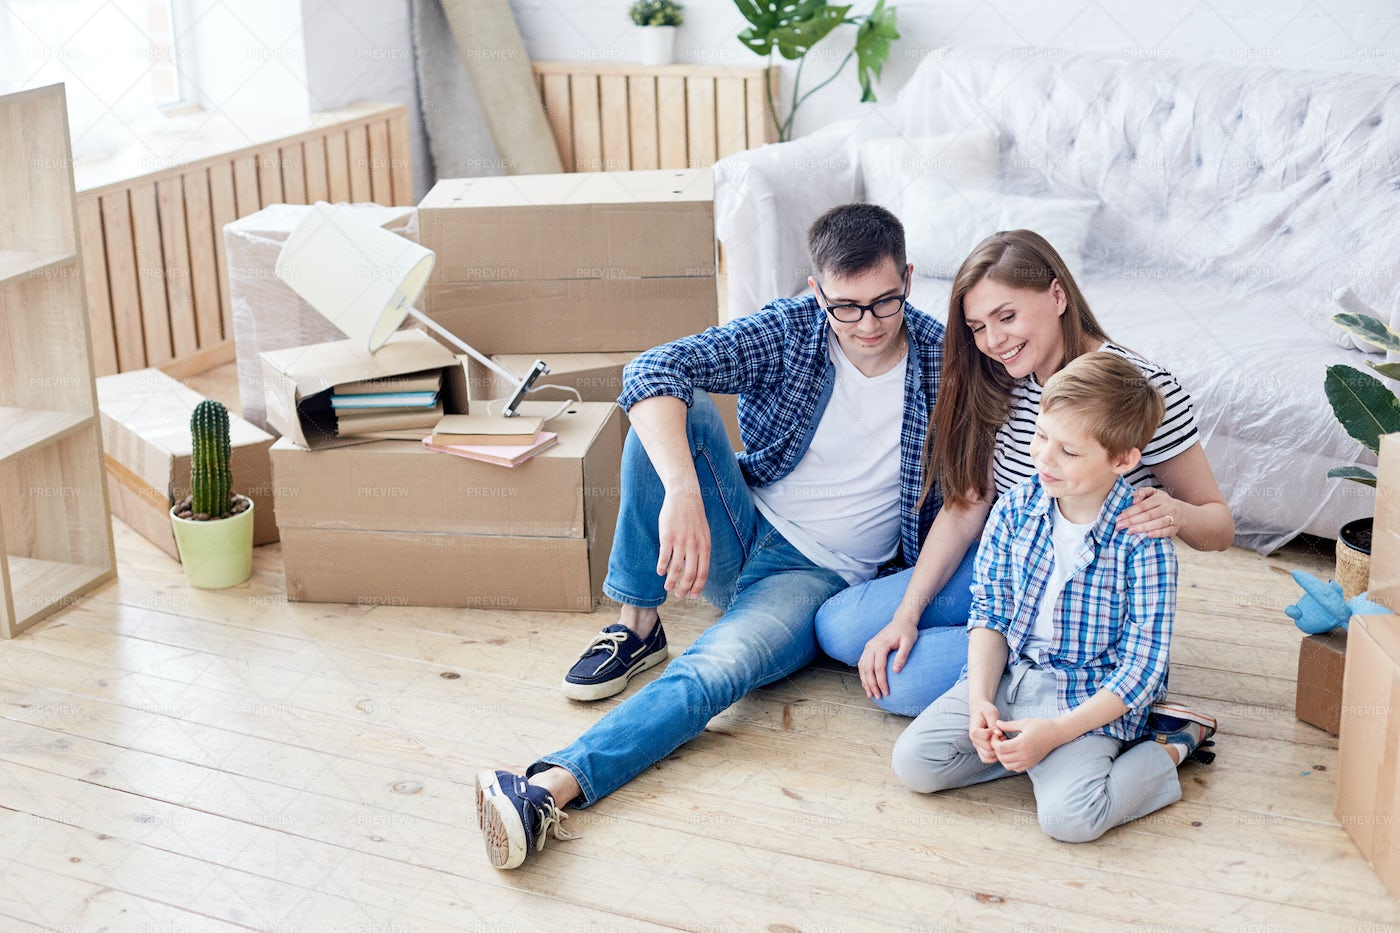 Having Fun In New Apartment: Stock Photos